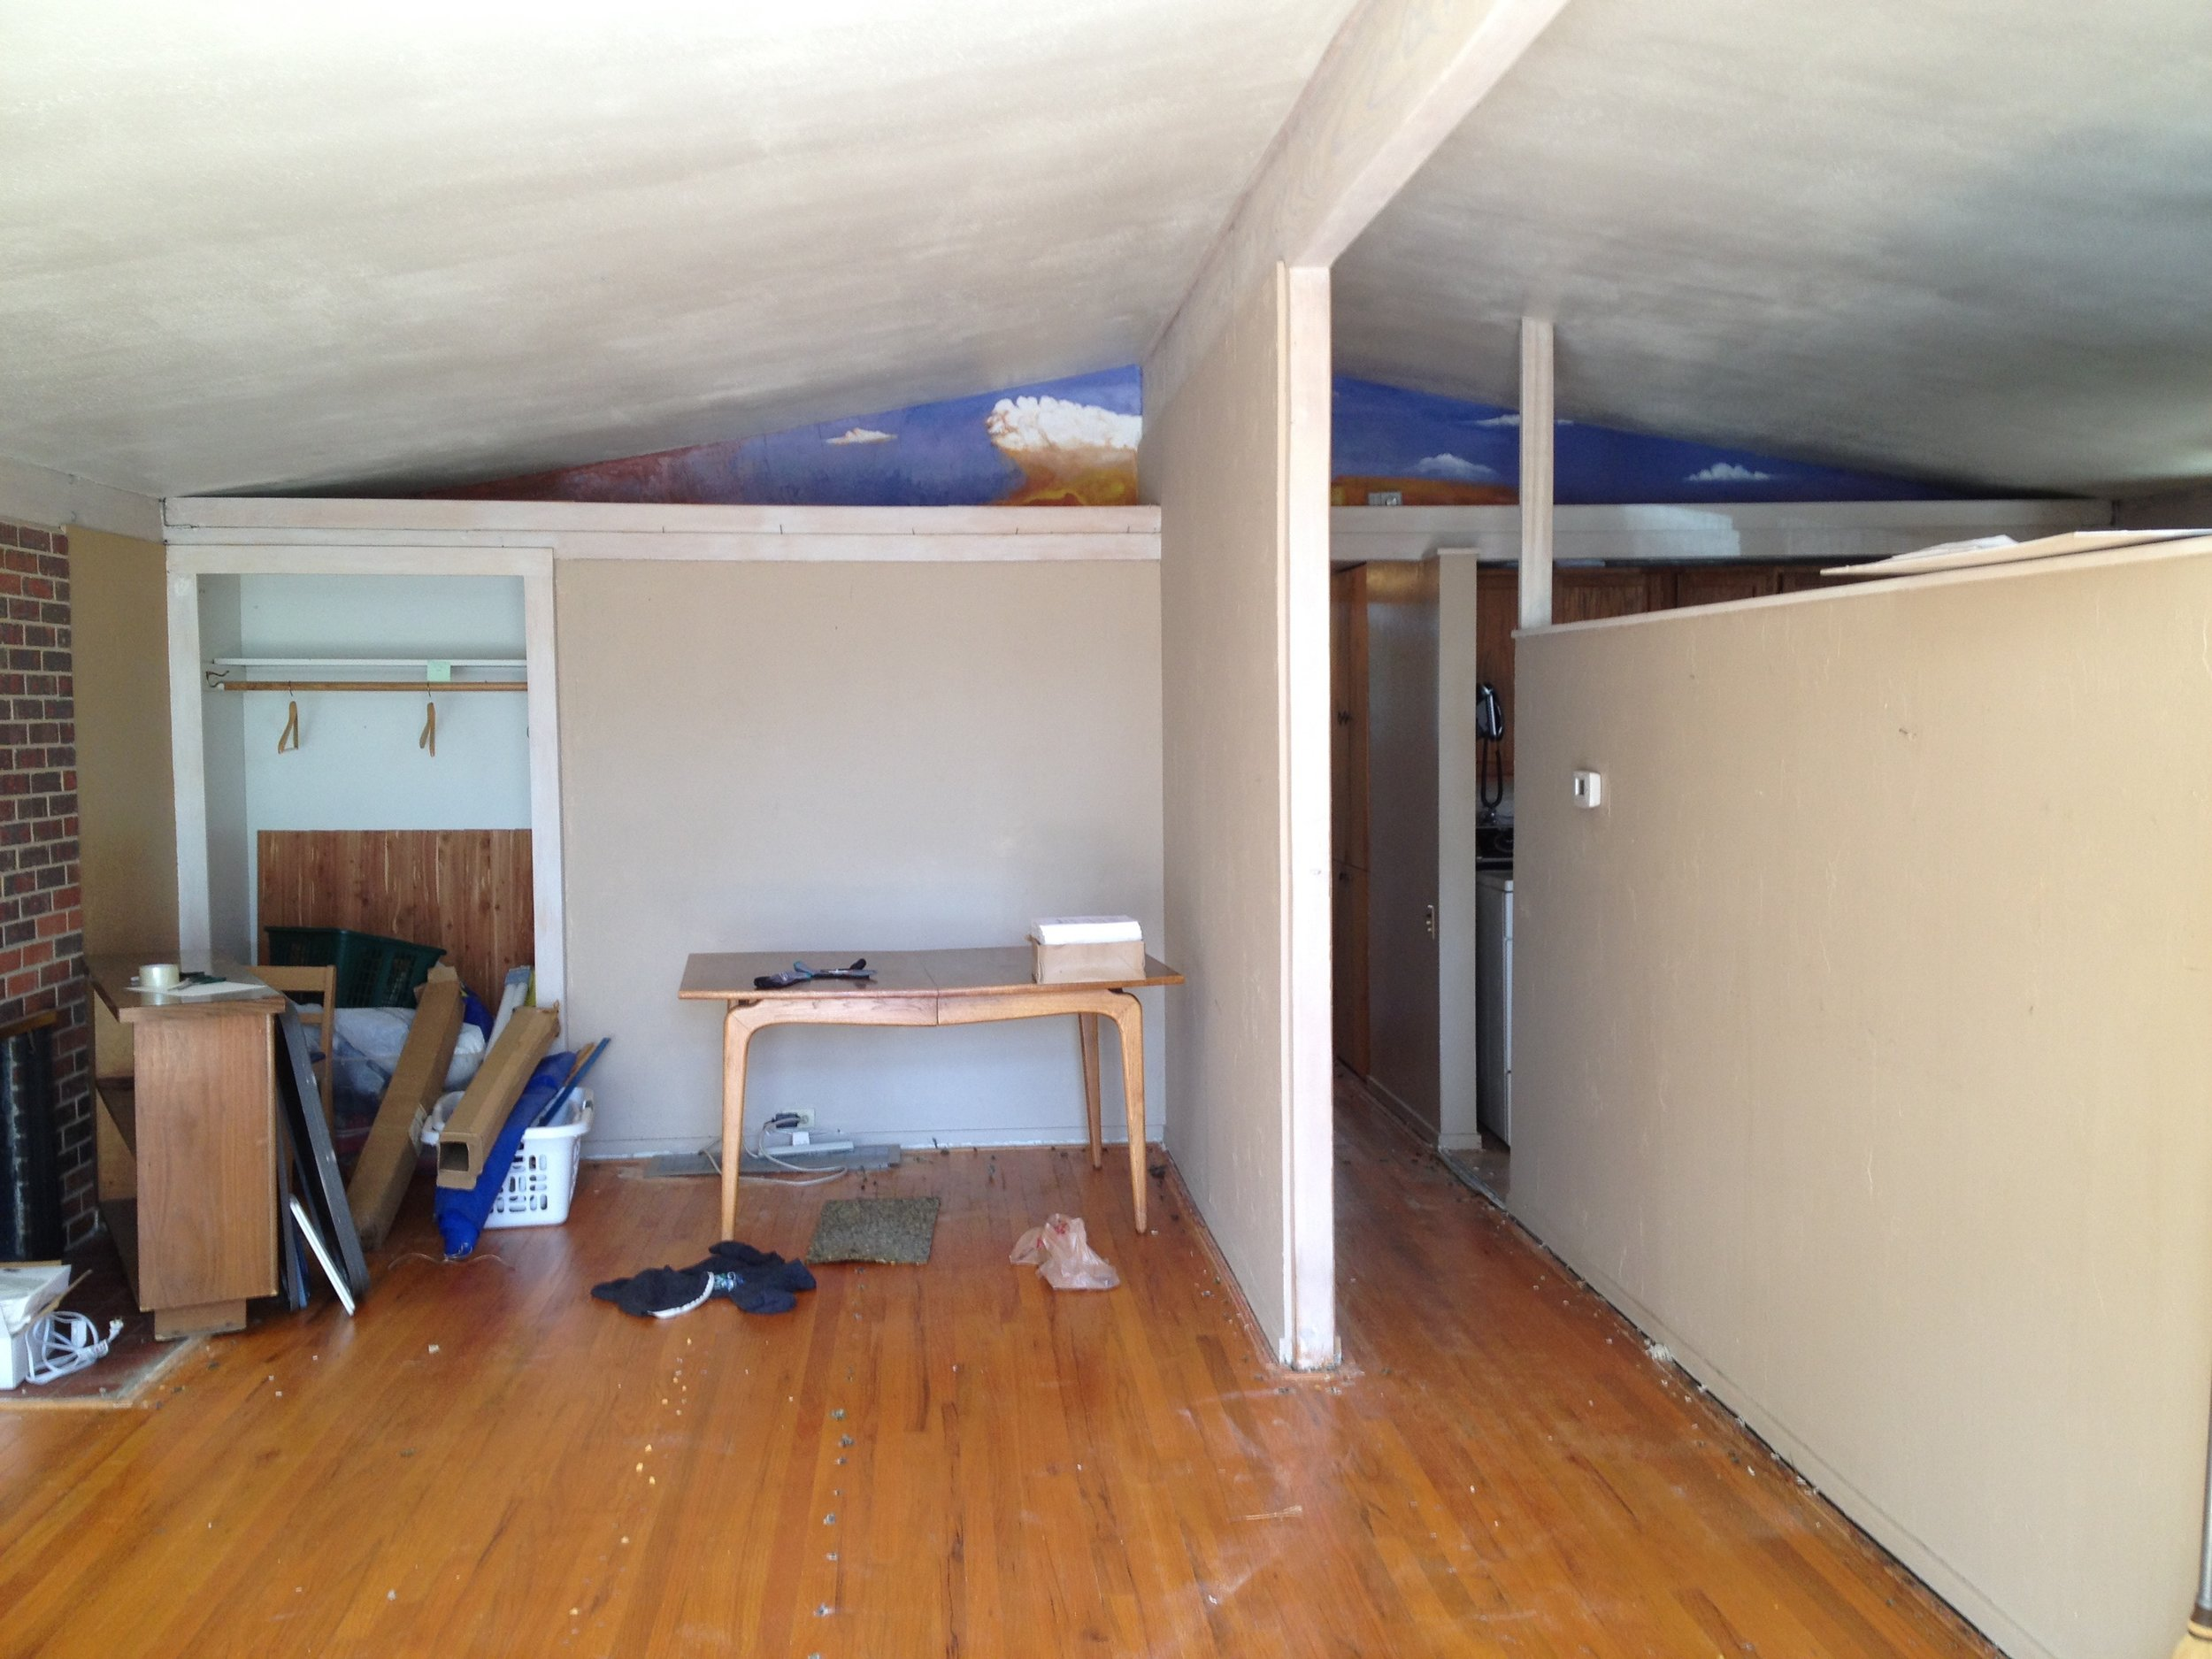 KitchenLiving Room Before.jpg